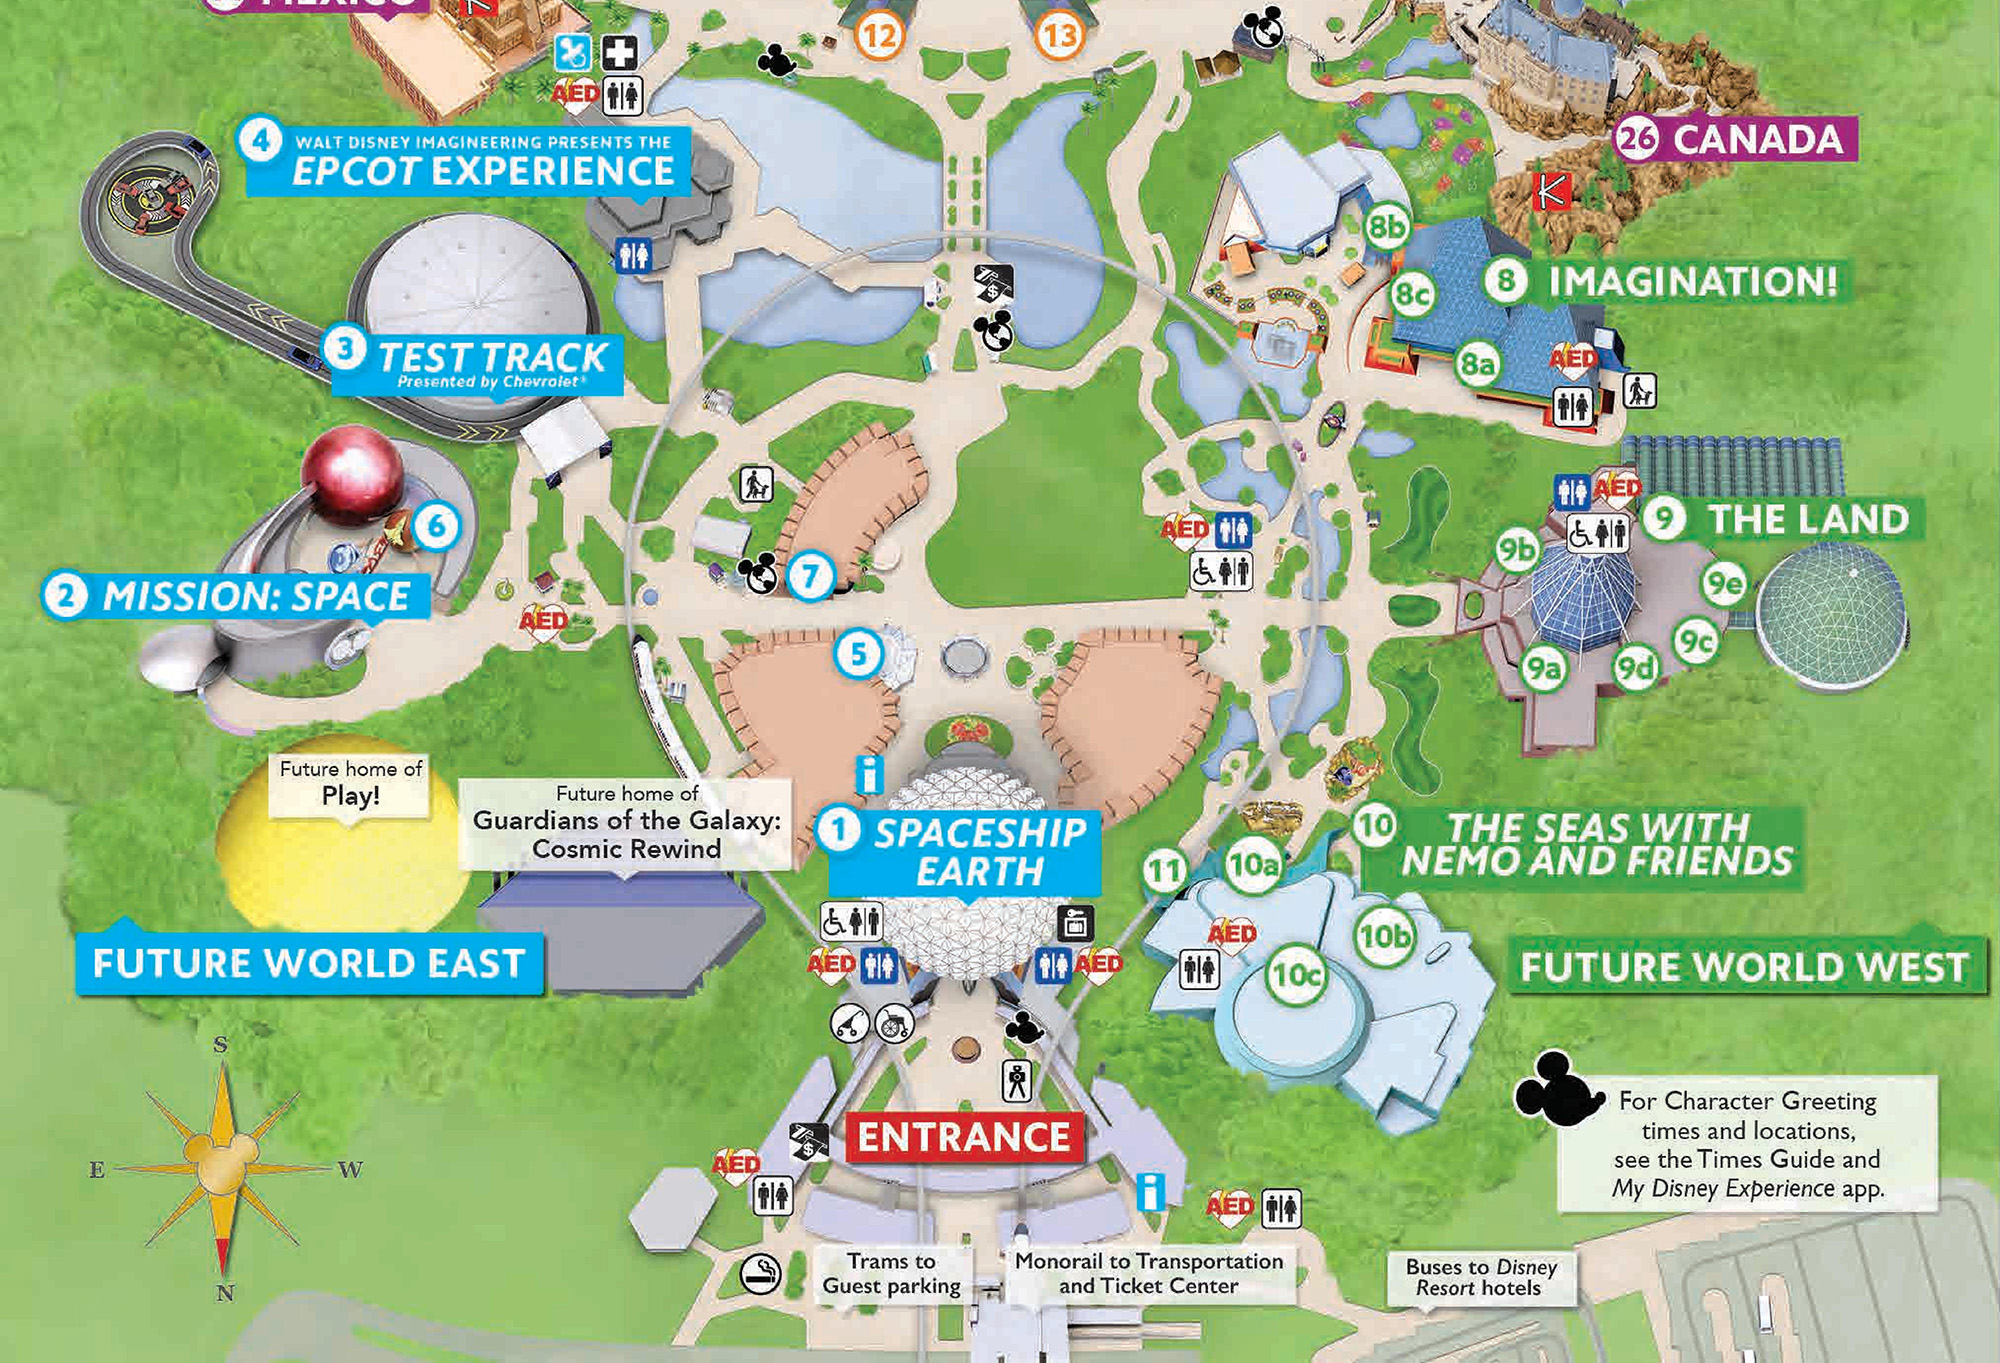 Updated Epcot Guide Map Showcases Future Projects (Space 220 ...